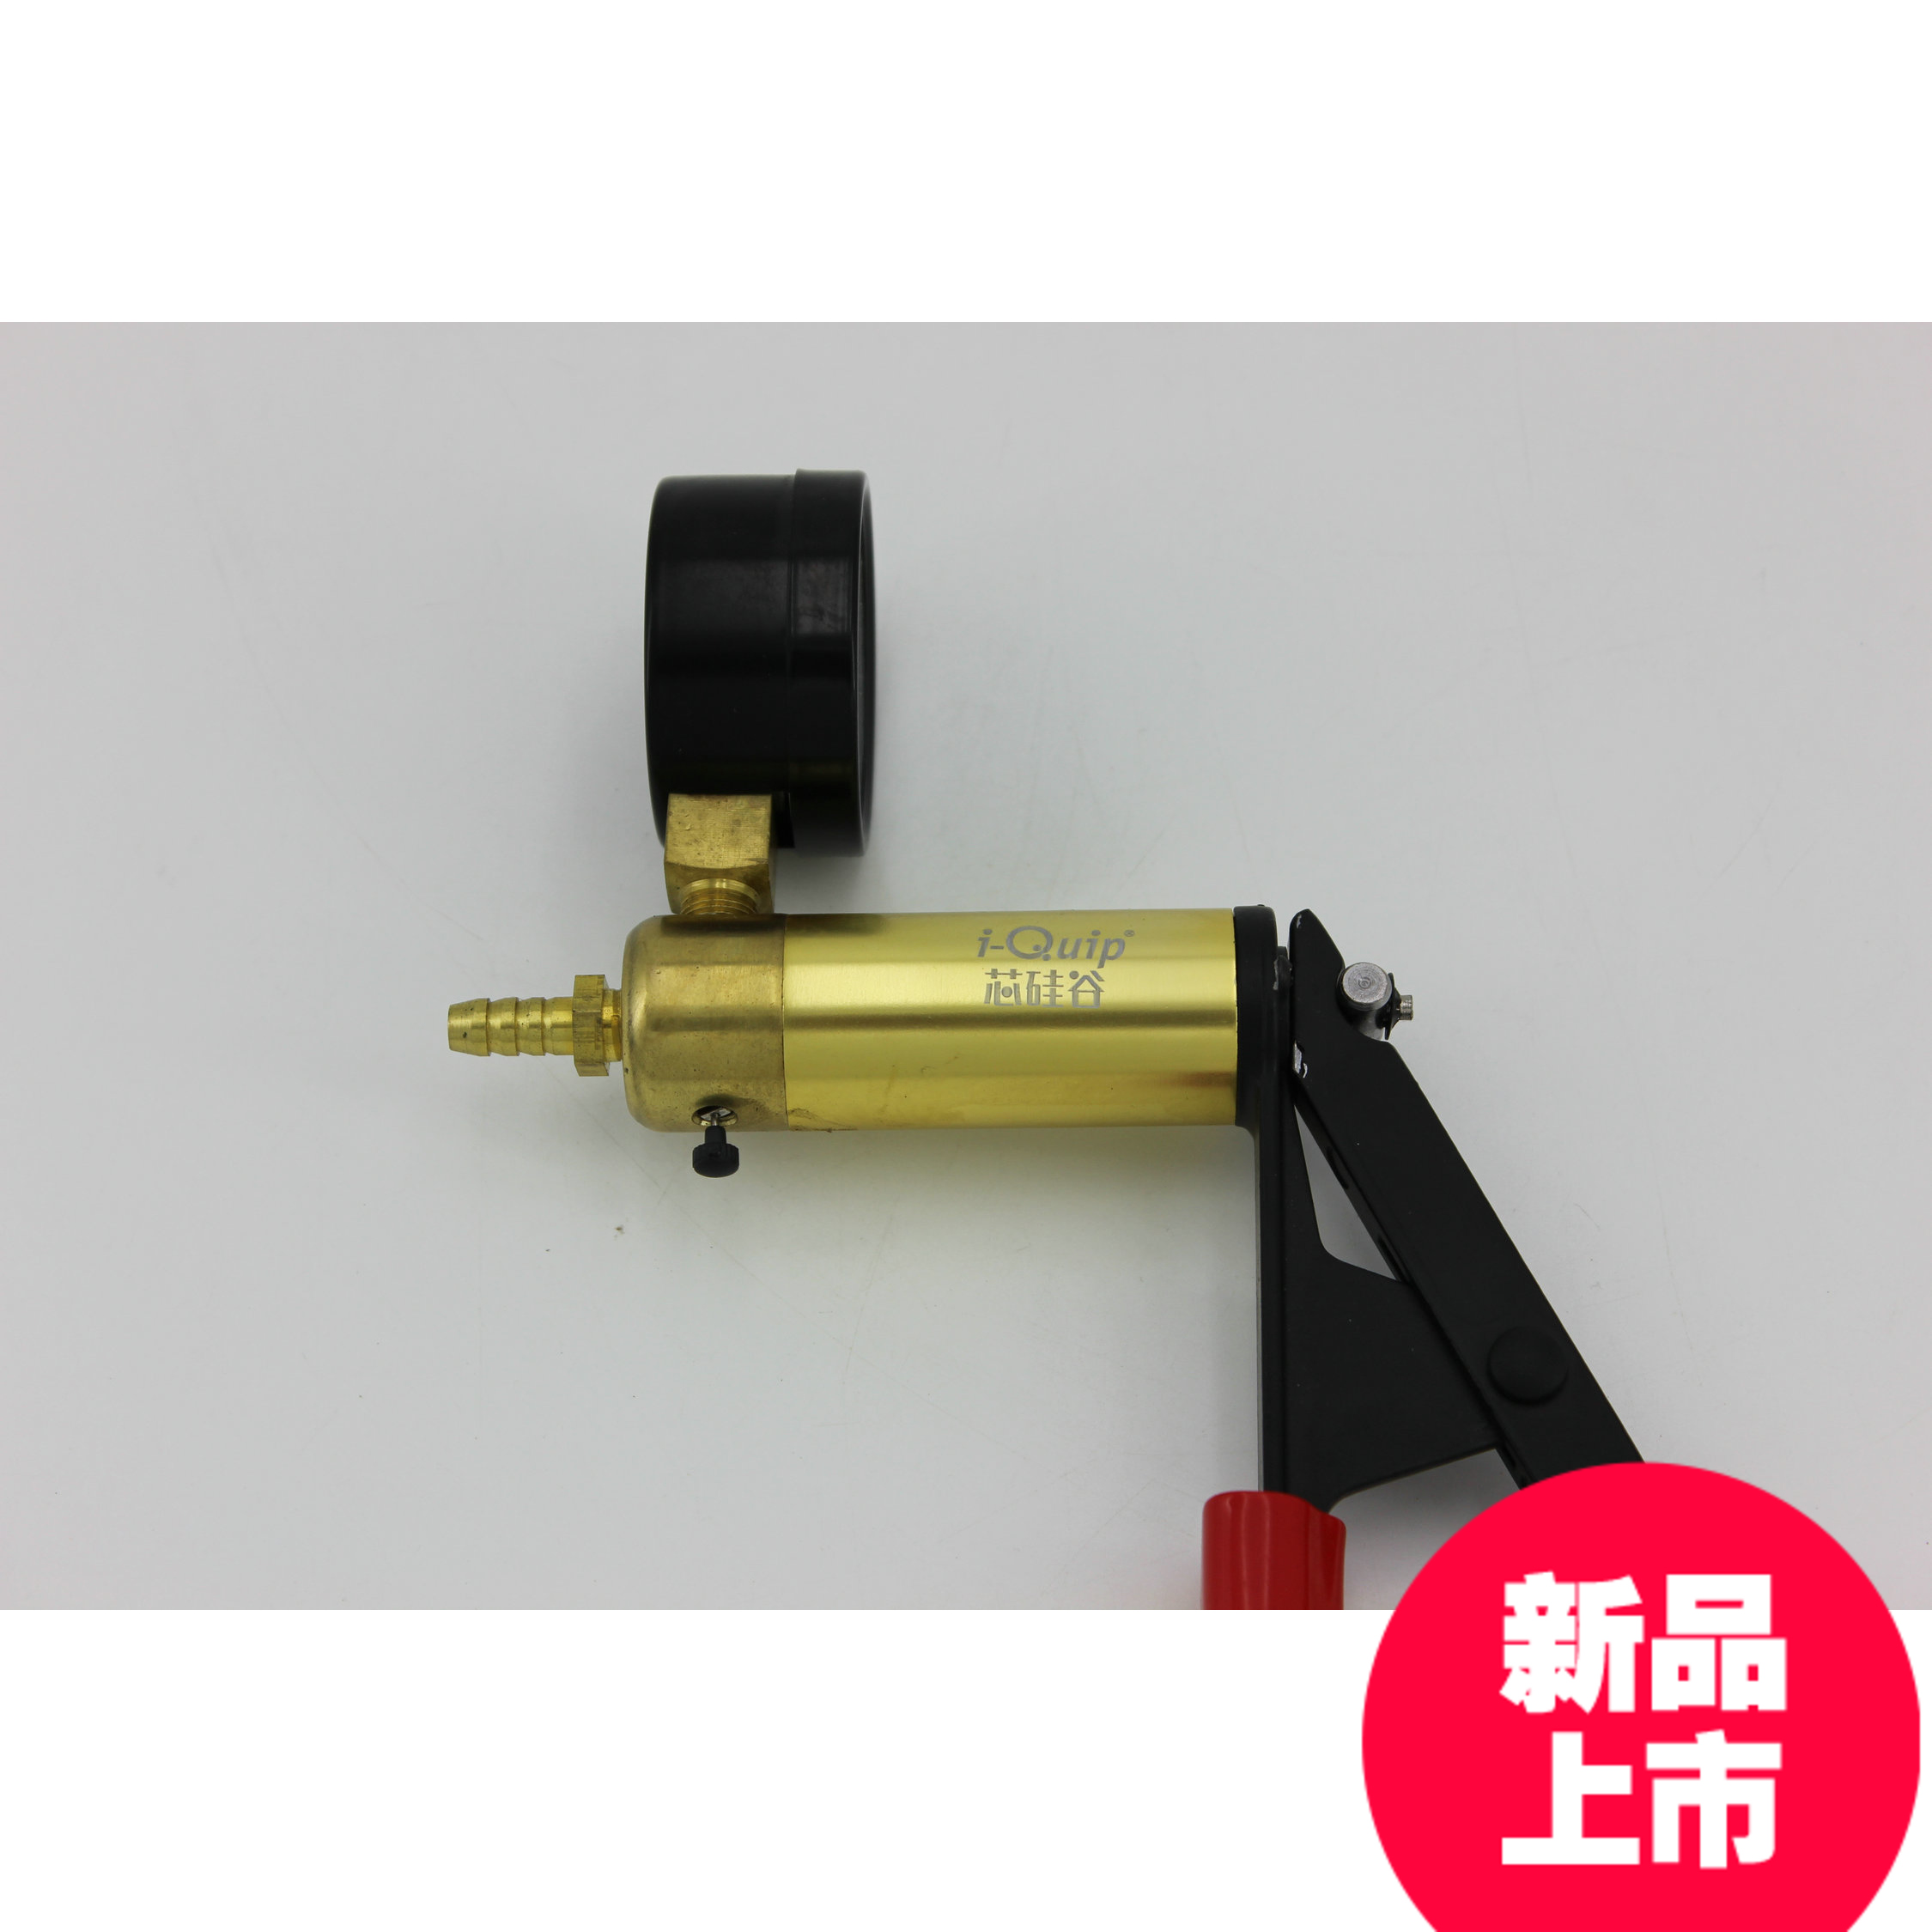 Copper core siliconvalley H3756 car pumping manual vacuum pump vacuum pump vacuum suction gun vacuum suction pump